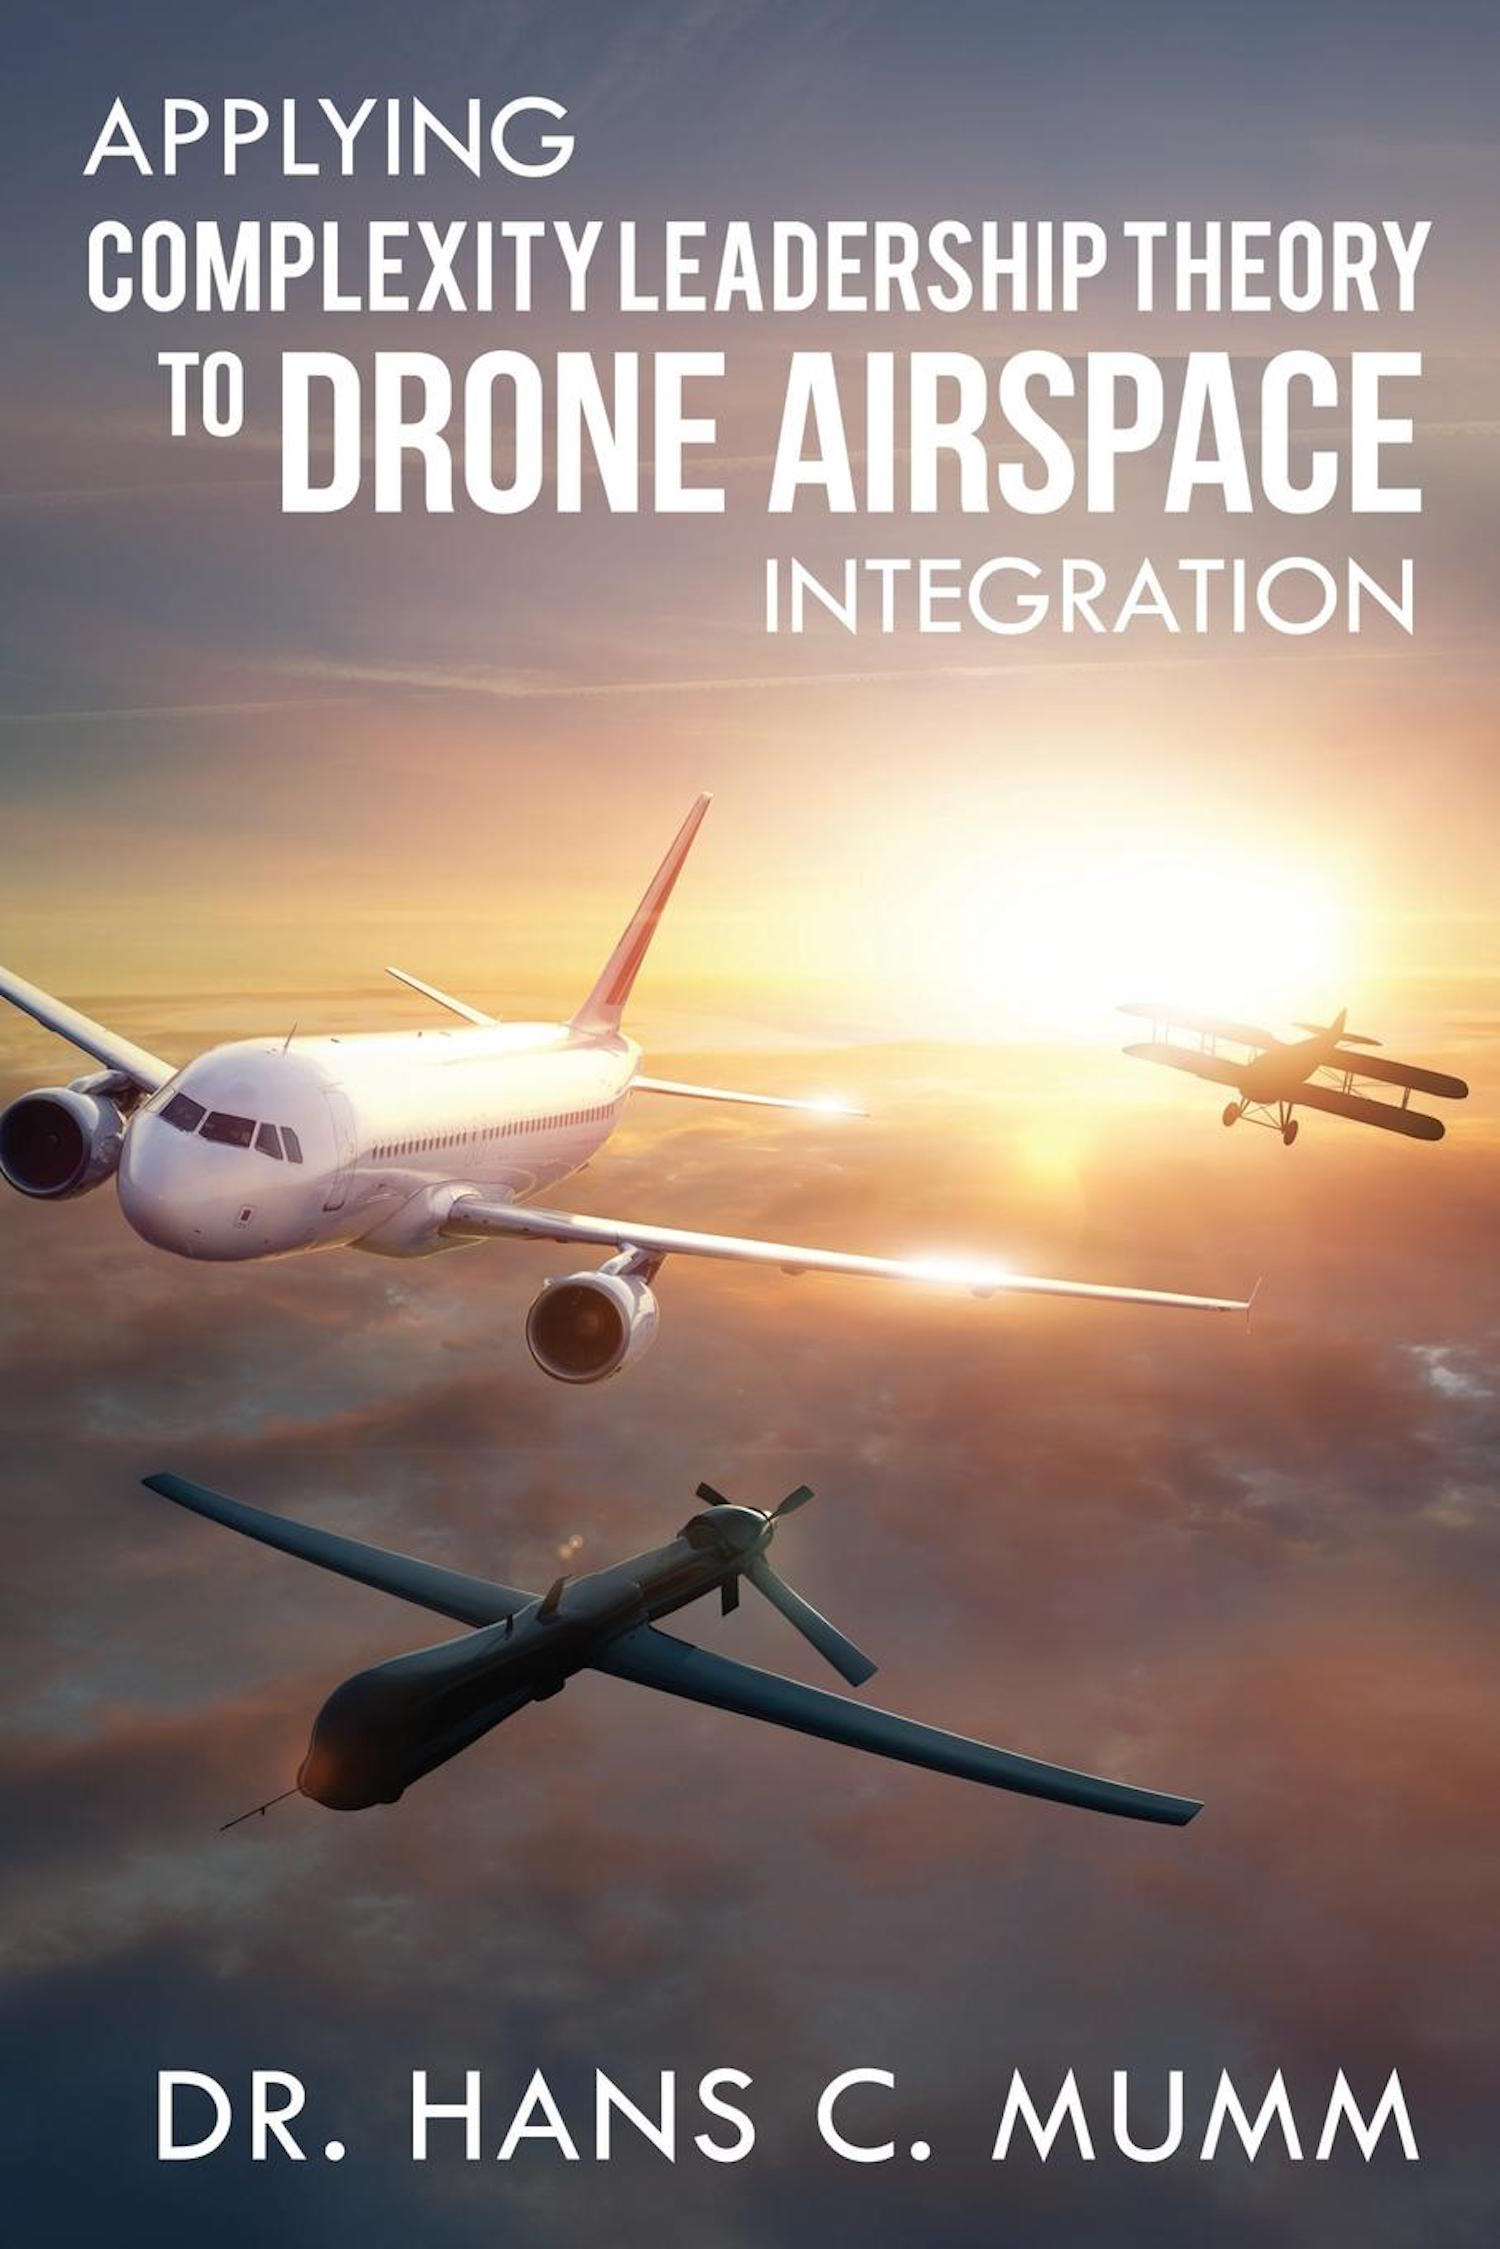 Applying Complexity Leadership Theory to Drone Airspace Integration